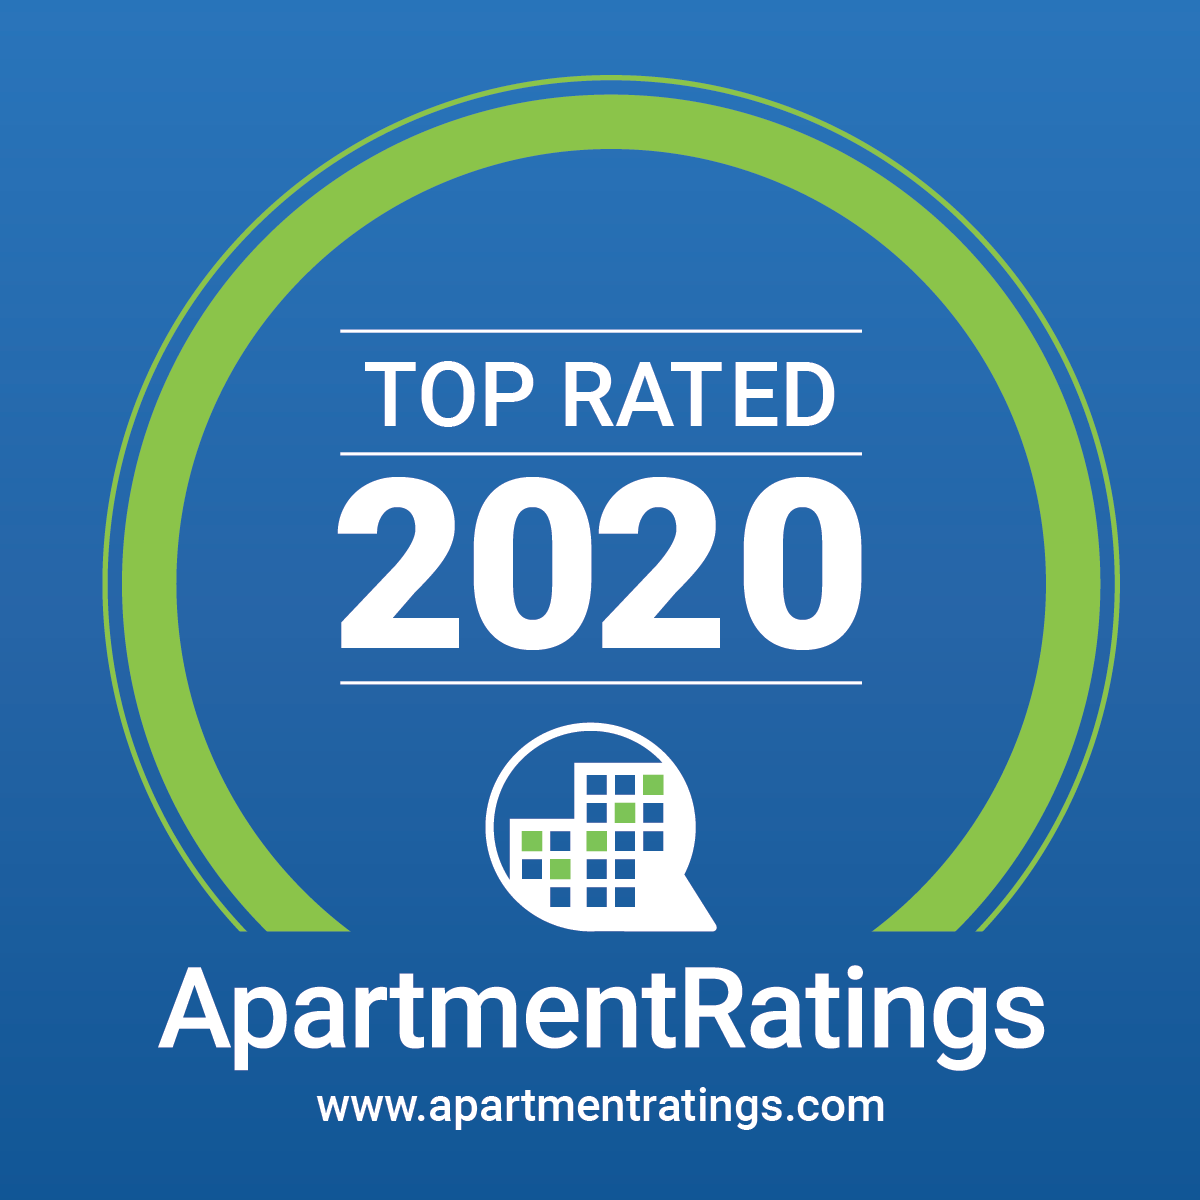 Top Rated 2019 Apartment Ratings award logo